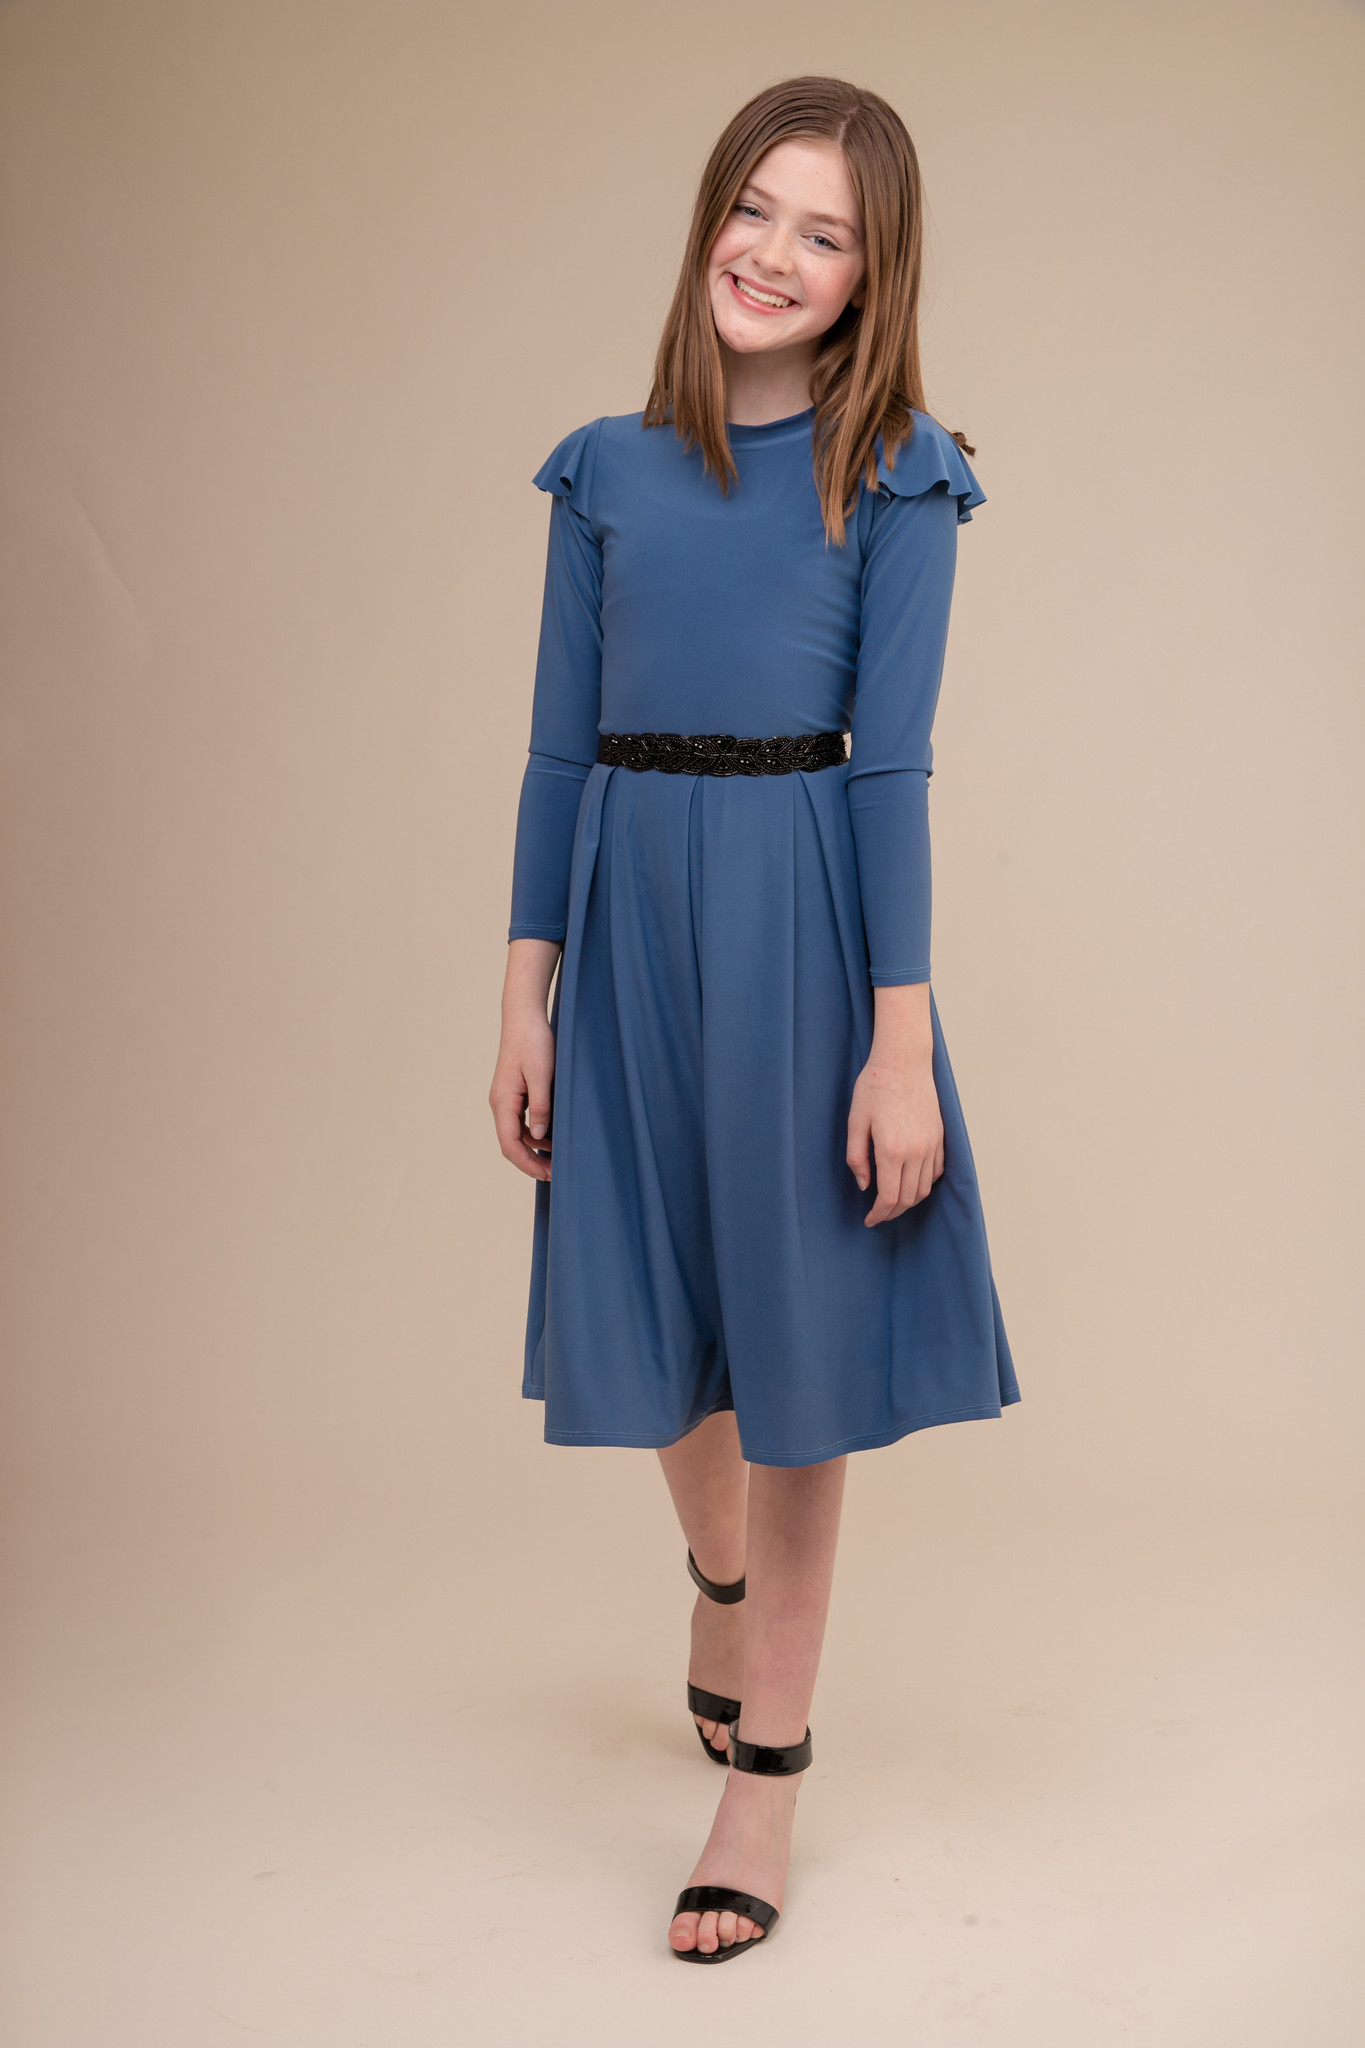 Storm Blue Long Sleeve Dress with Ruffle in Longer Length with Belt.